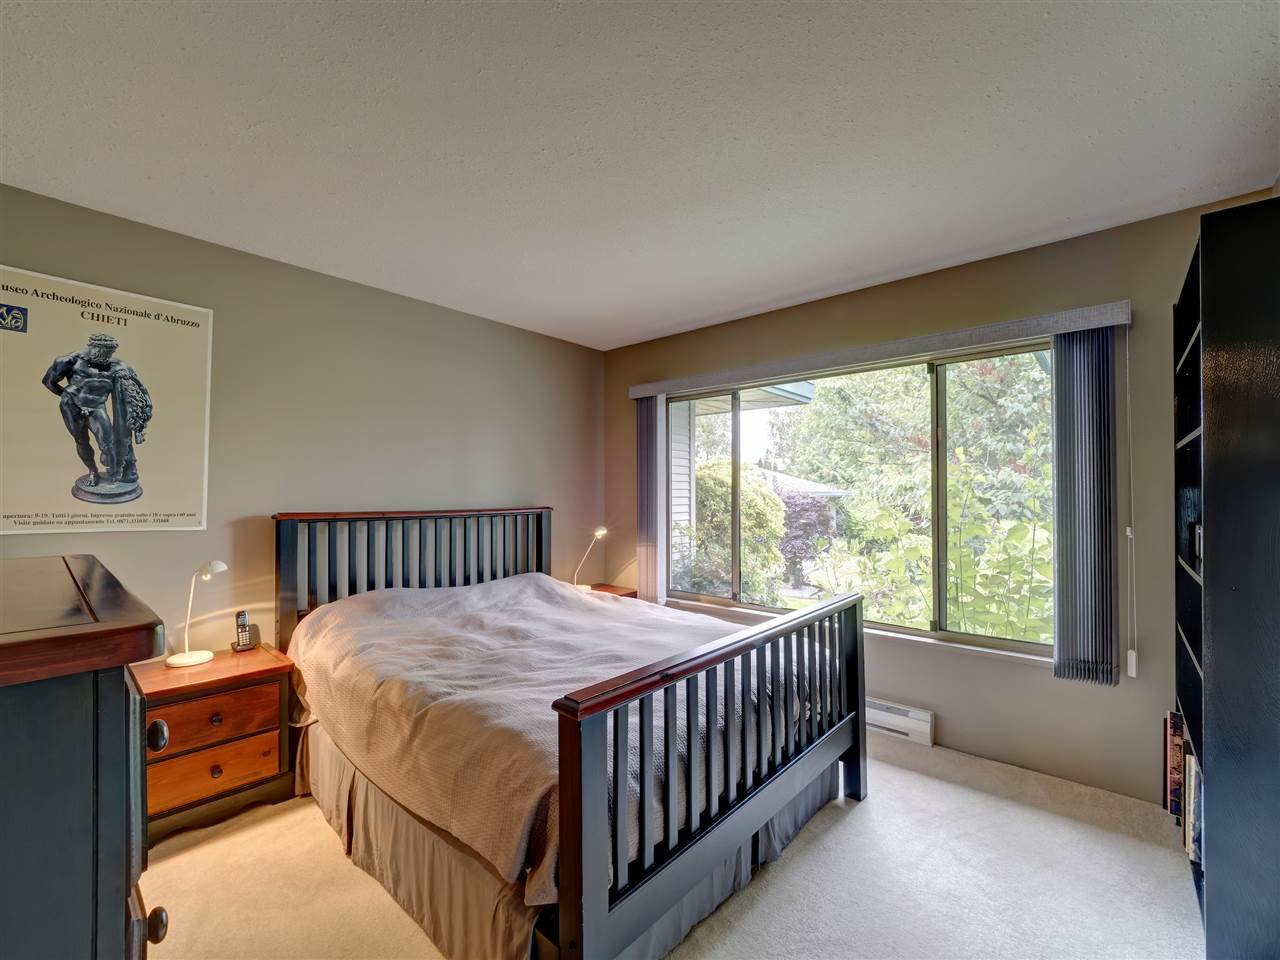 """Photo 17: Photos: 41 555 EAGLECREST Drive in Gibsons: Gibsons & Area Townhouse for sale in """"GEORGIA MIRAGE"""" (Sunshine Coast)  : MLS®# R2485008"""